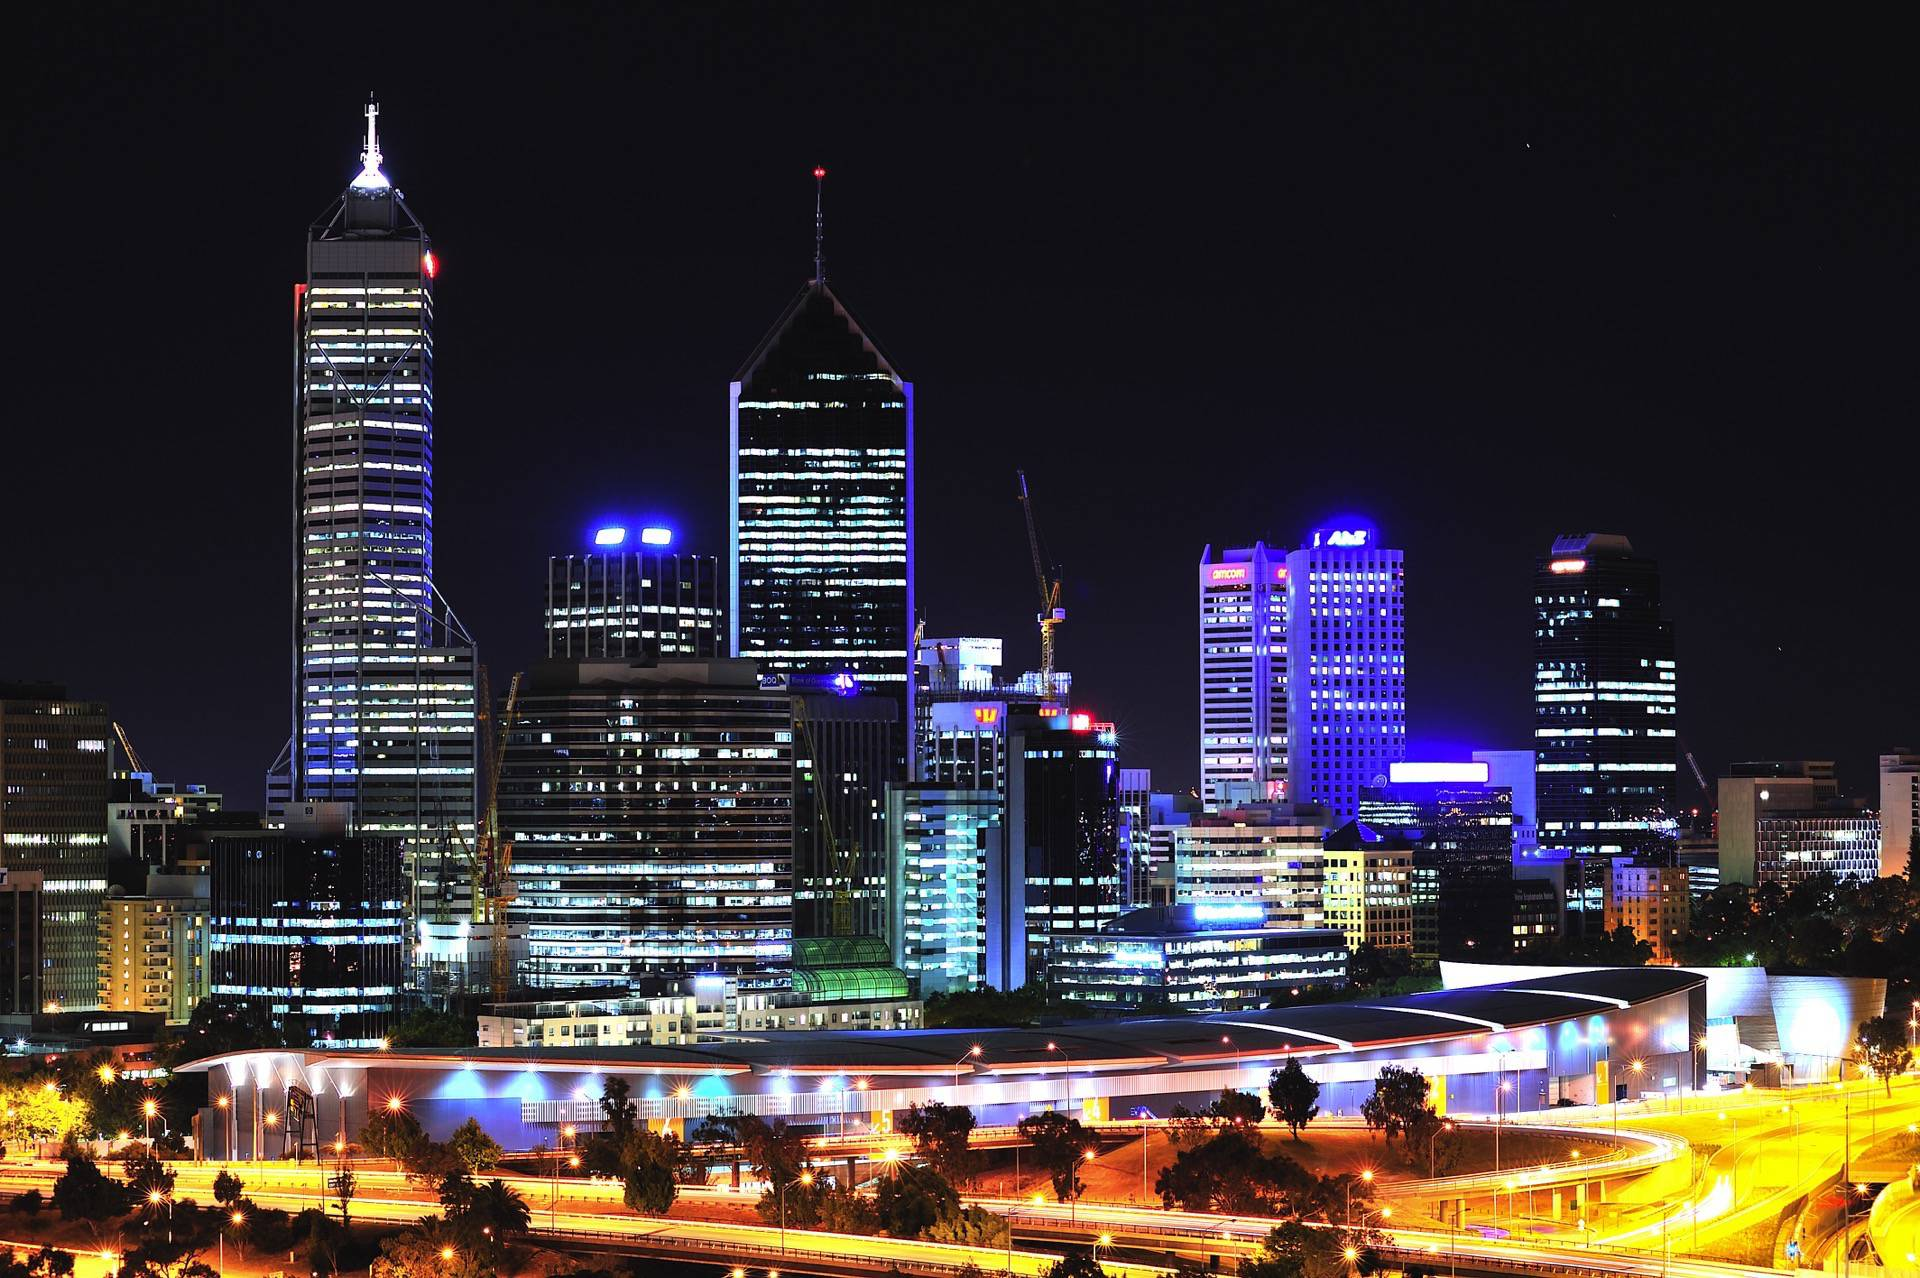 A panoramic night view of the City of Perth from the Kings park